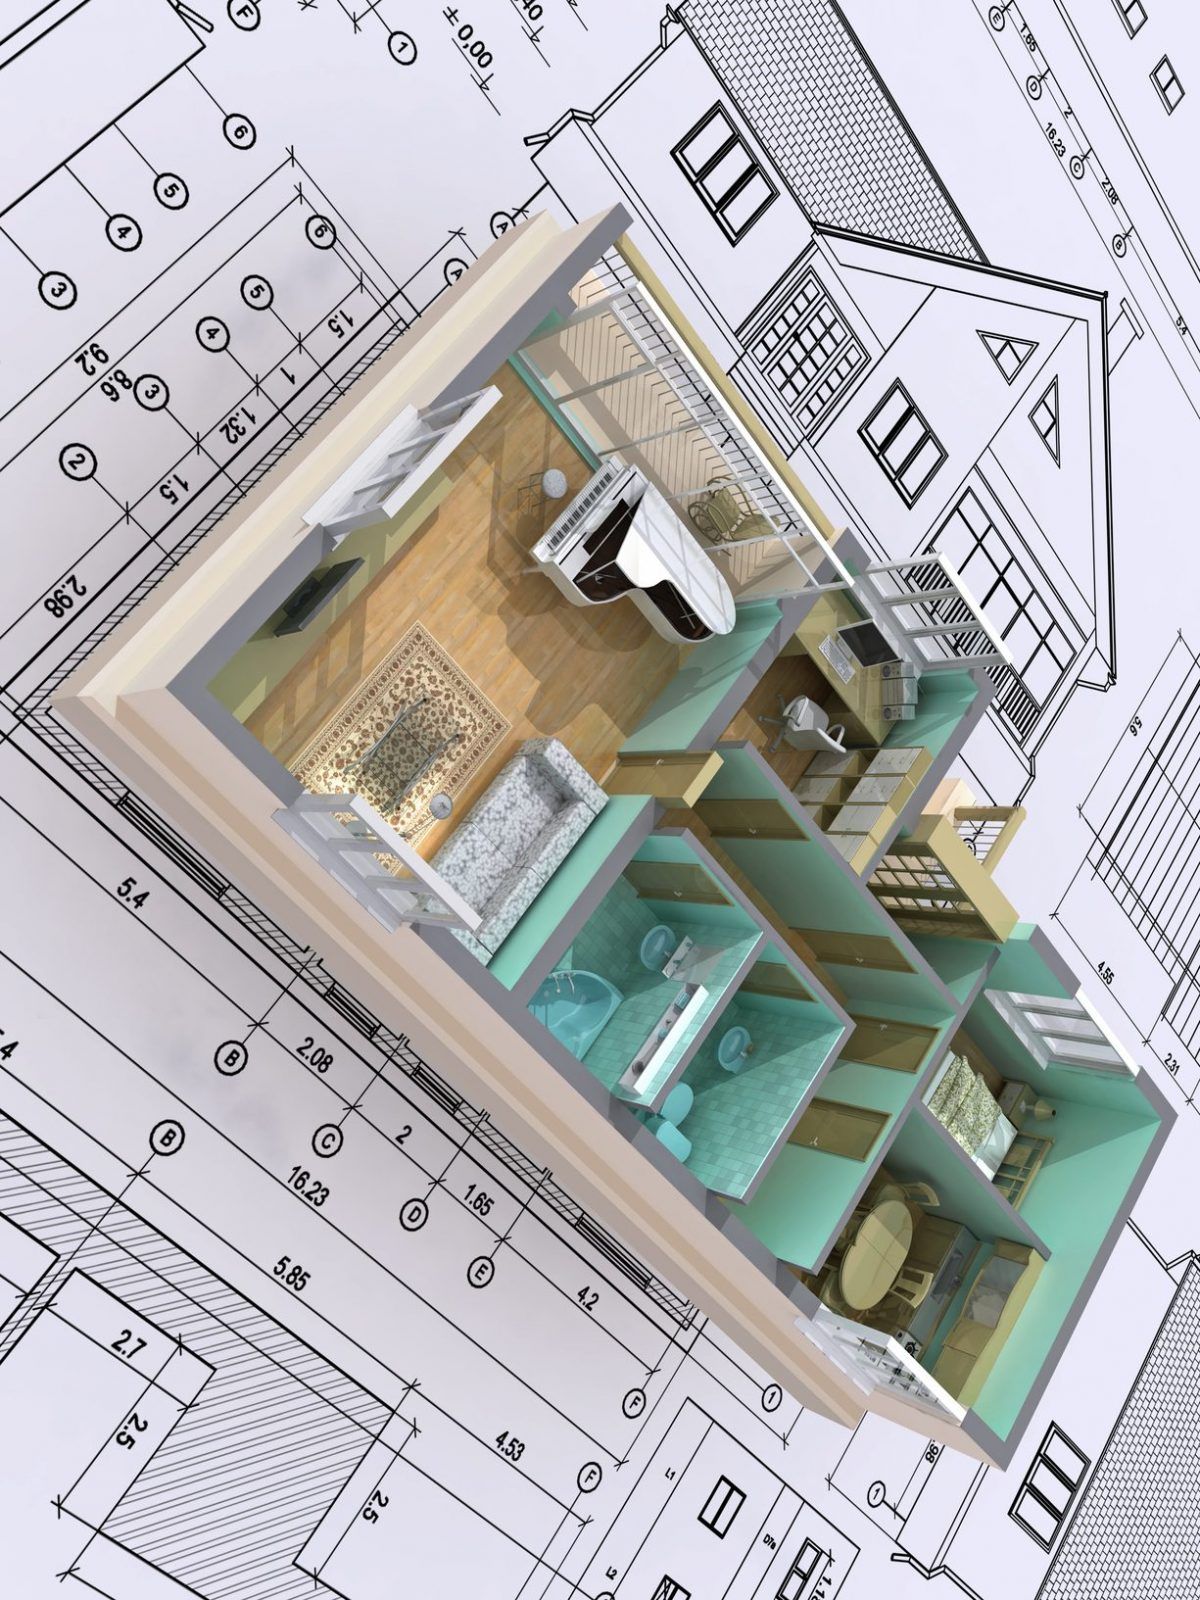 3D isometric view the cut residential house on architect